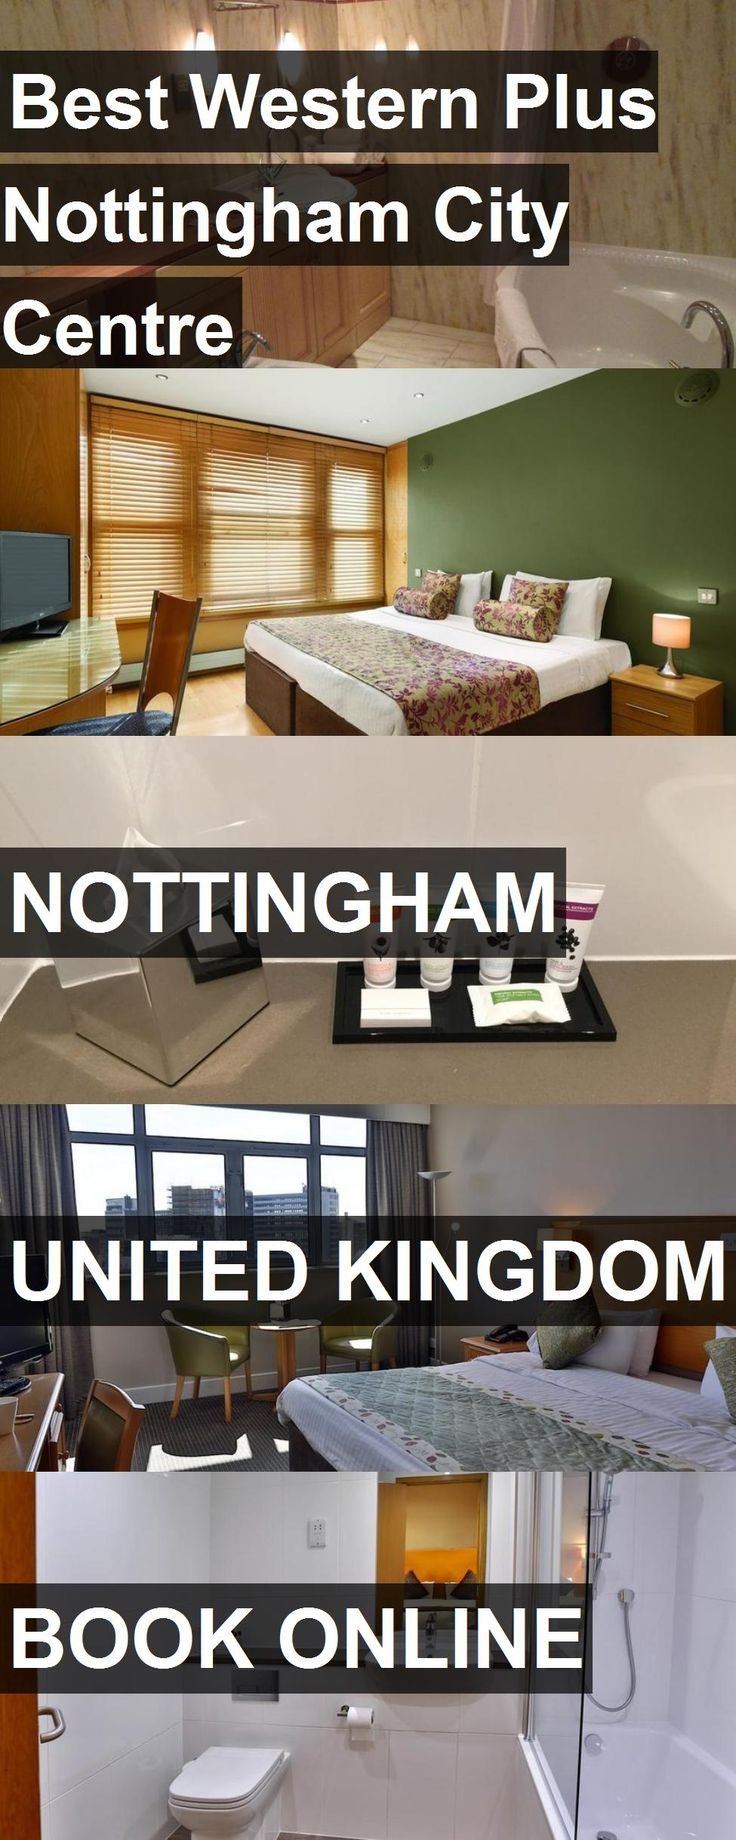 Hotel Best Western Plus Nottingham City Centre in Nottingham, United Kingdom. For more information, photos, reviews and best prices please follow the link. #UnitedKingdom #Nottingham #travel #vacation #hotel